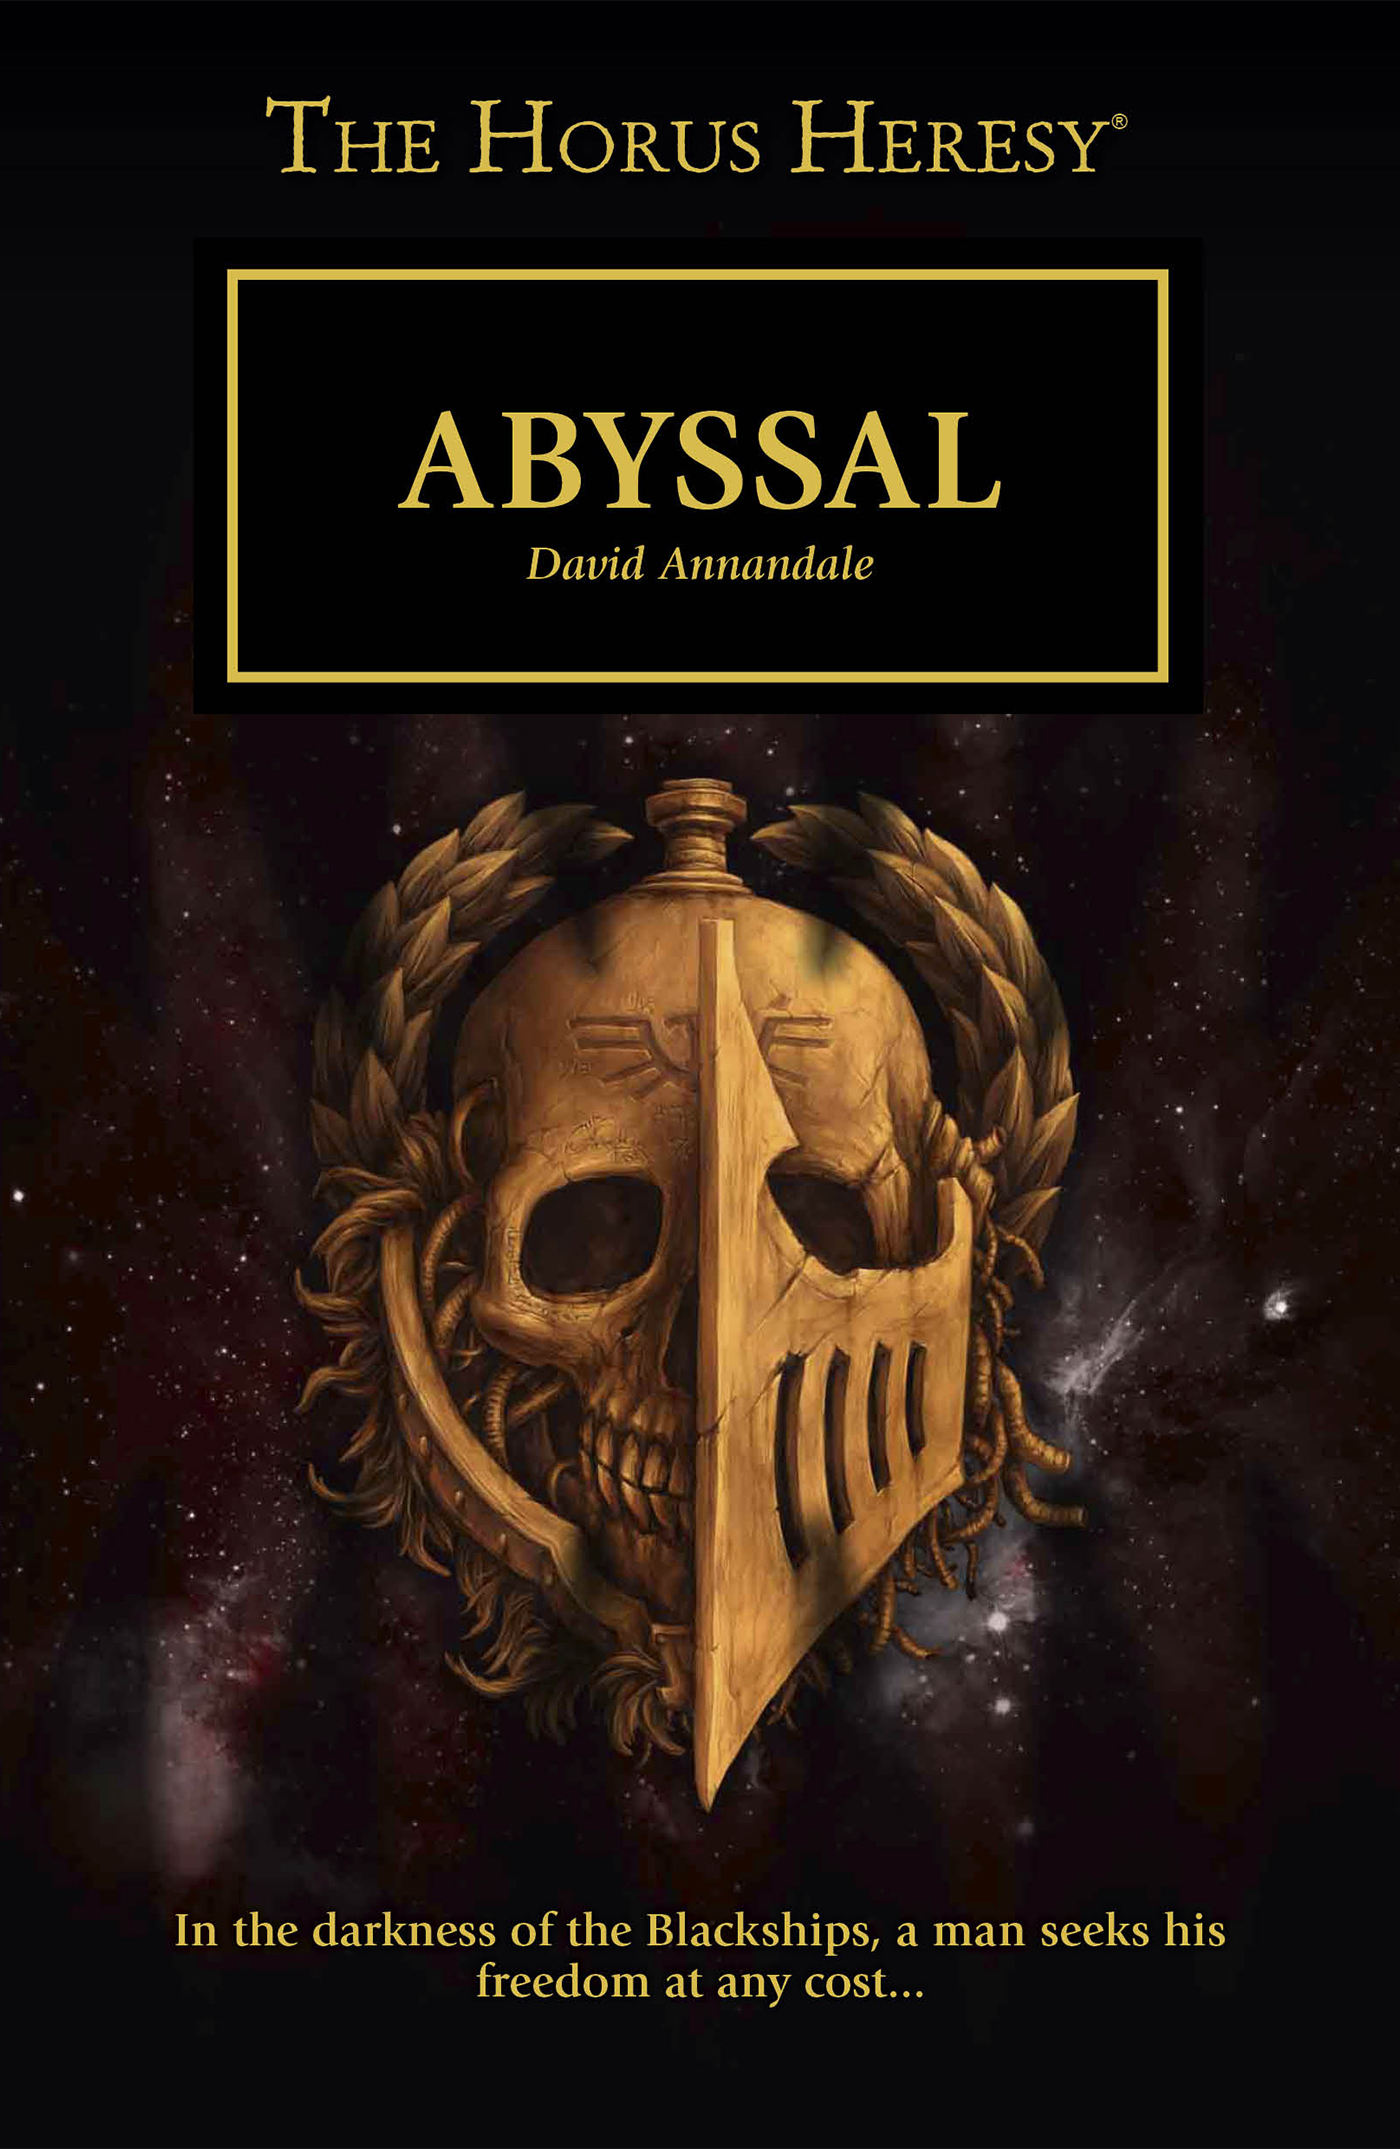 Abyssal by David Annandale